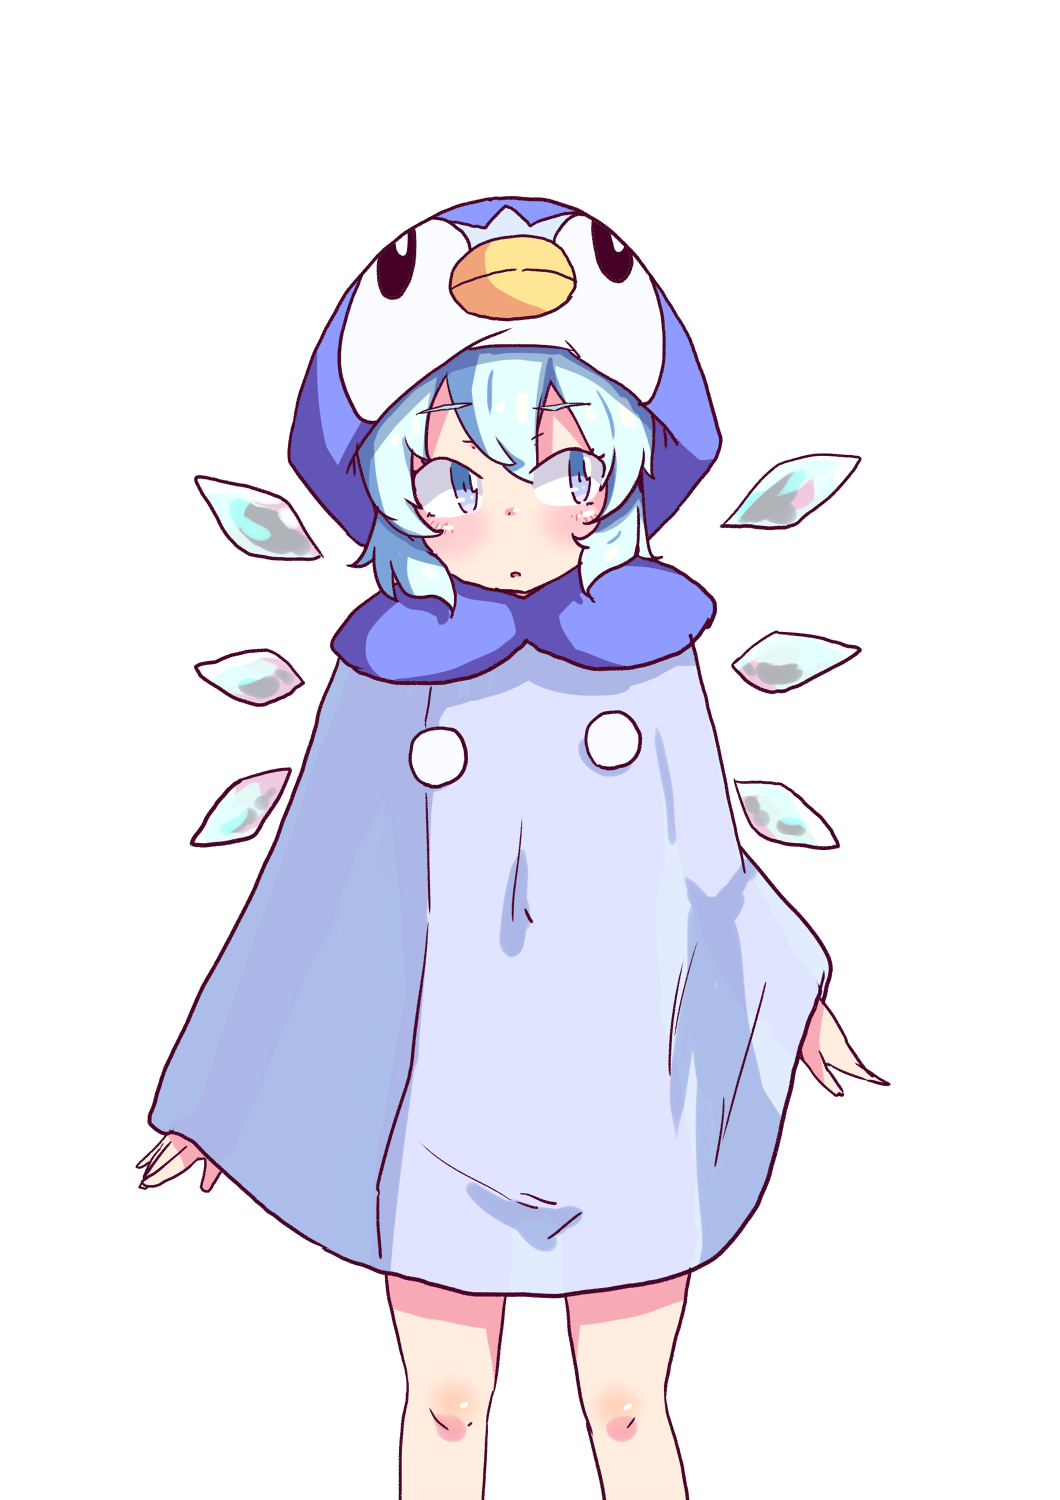 1girl :o alternate_hairstyle animal_costume arms_at_sides bangs blue_eyes blush cirno detached_wings eyebrows_visible_through_hair feet_out_of_frame highres ice ice_wings looking_away looking_to_the_side parted_lips penguin_costume piplup pokemon see-through_silhouette short_hair simple_background sokutenkun solo standing touhou white_background wings